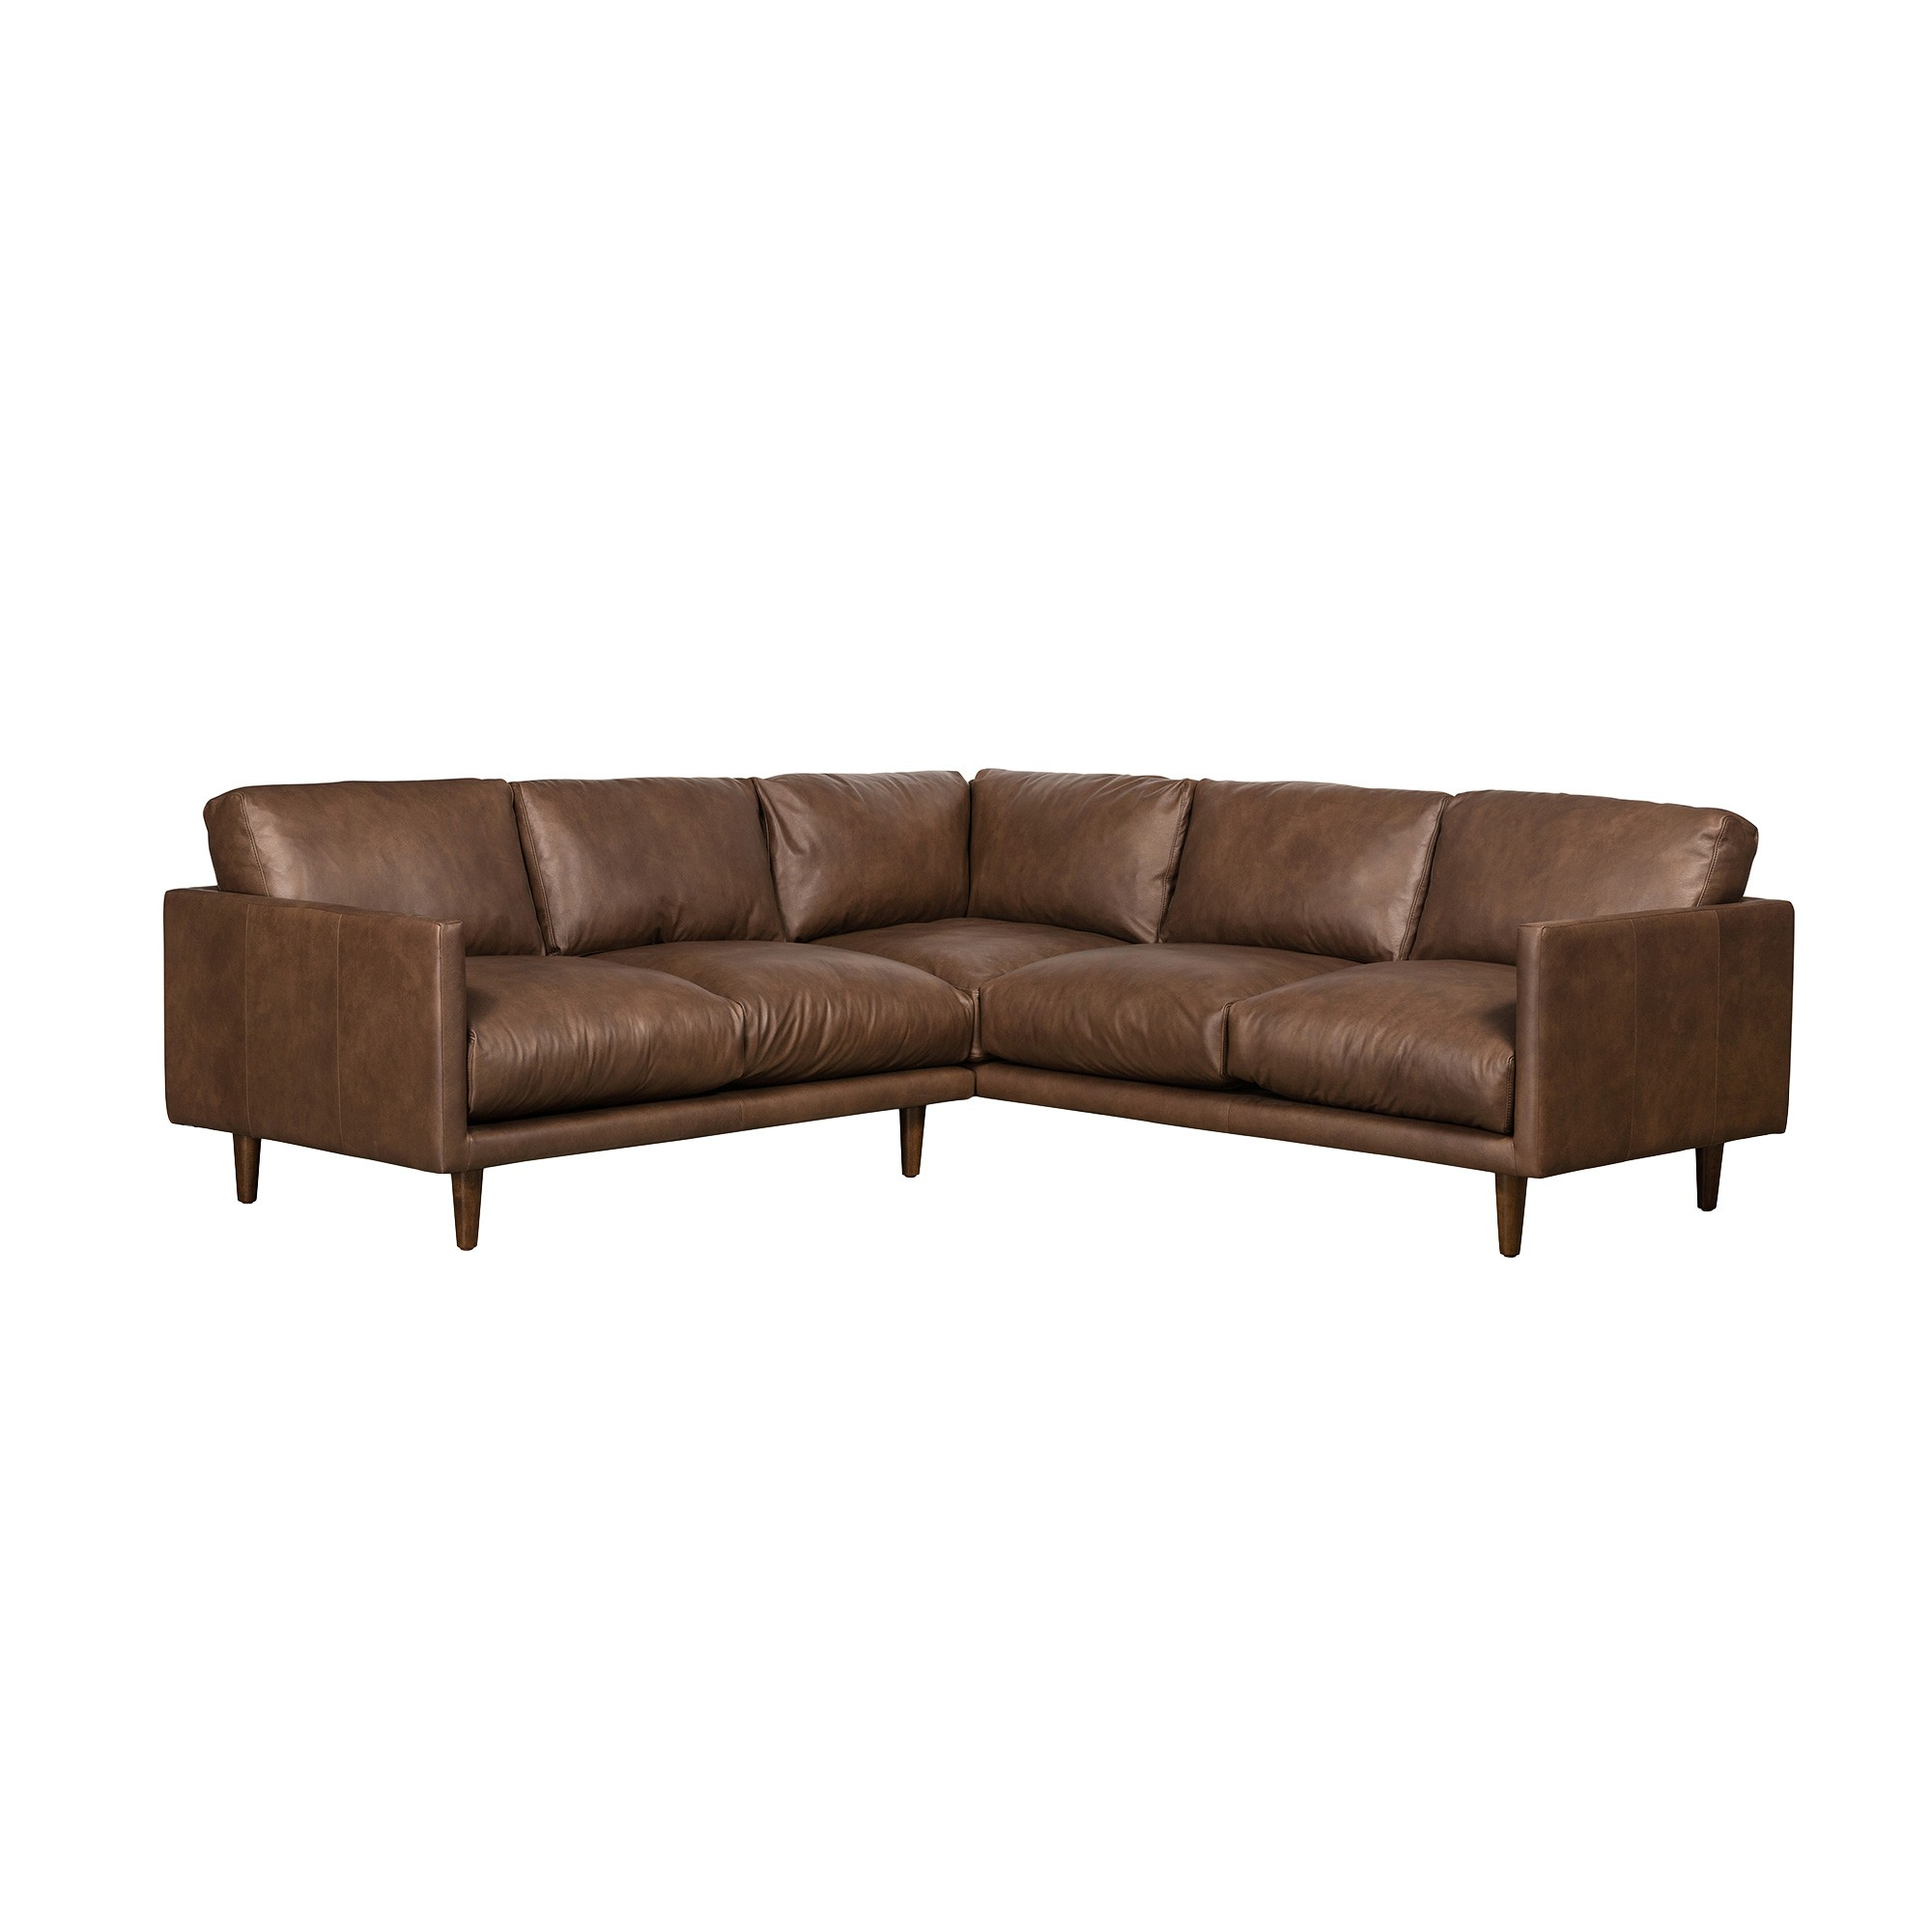 Carson Italian Leather Corner Sofa, 4 Seater, Brown